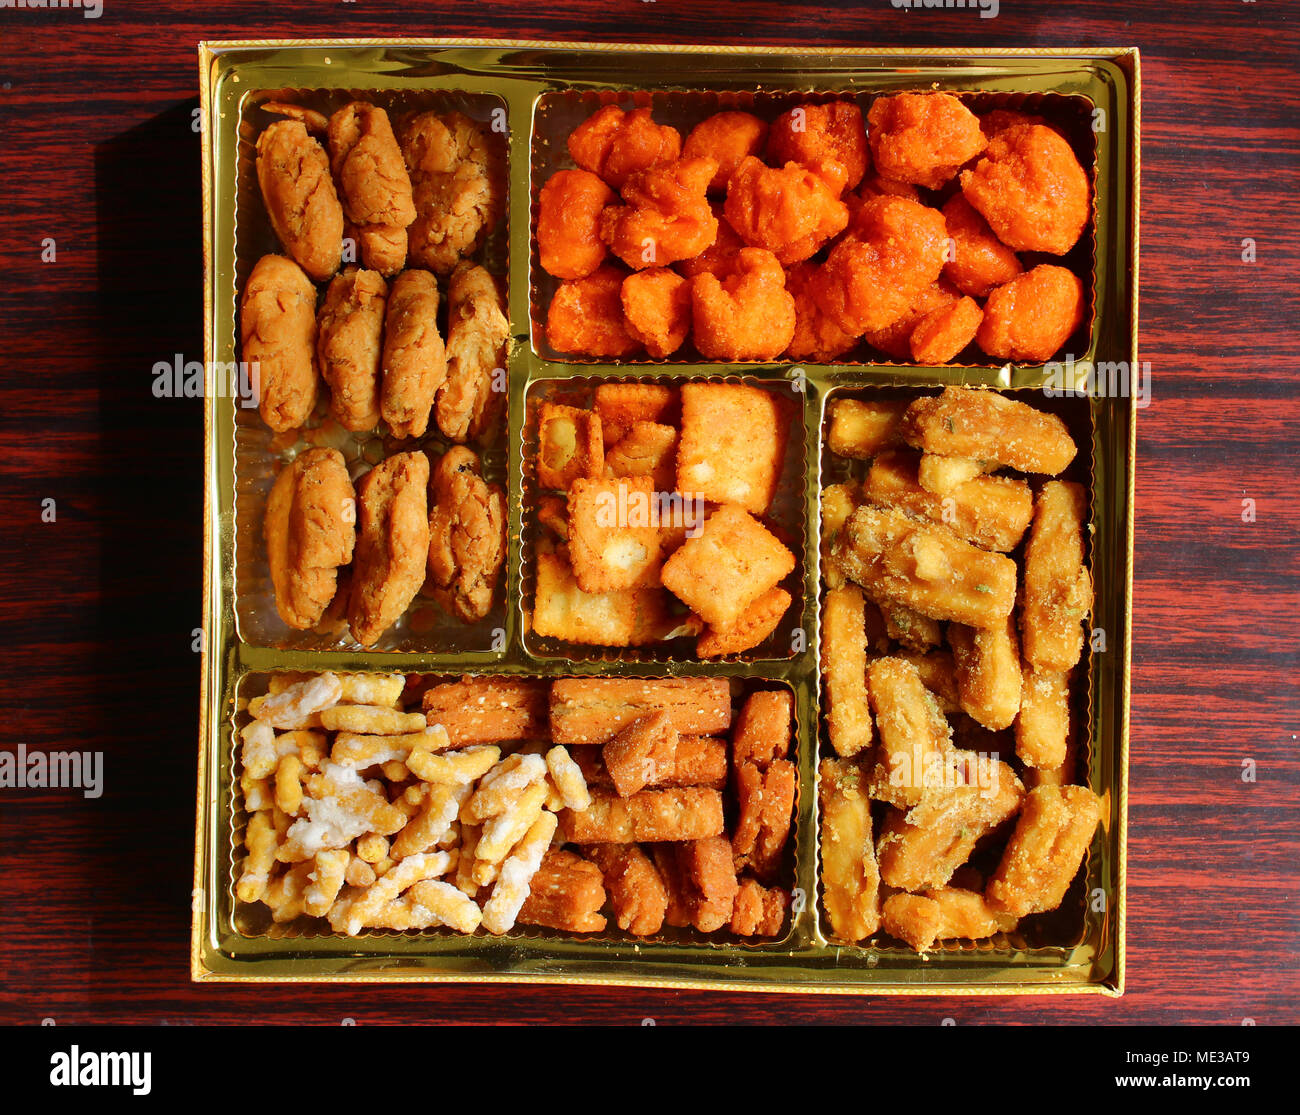 Box of Punjabi Bhaji distributed during Weddings in India - Stock Image